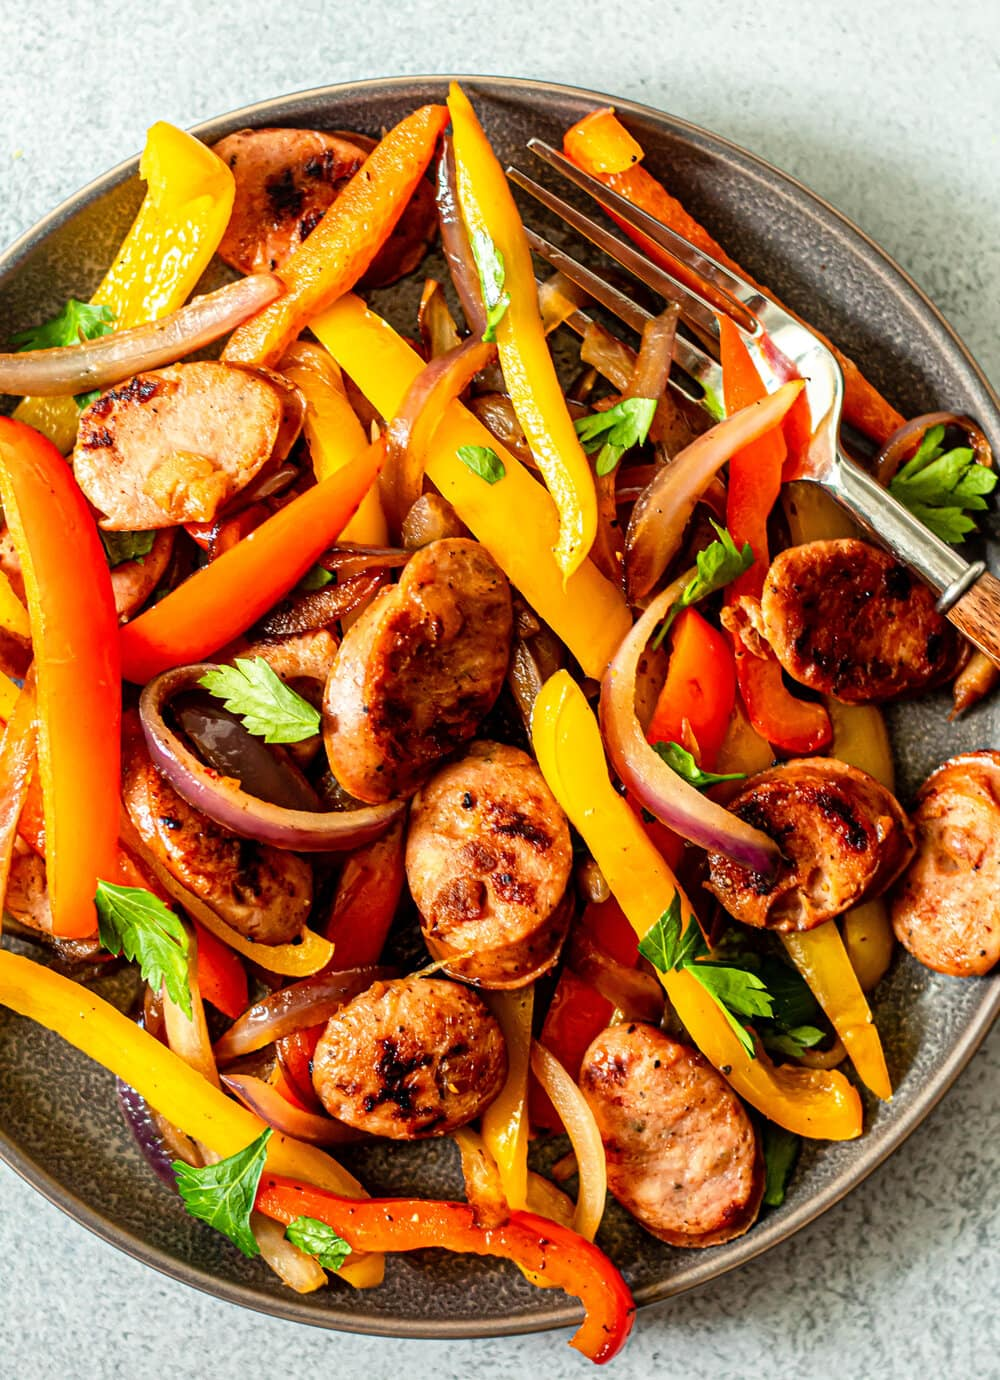 Easy Sausage and Pepper Skillet (Whole30, Paleo, Gluten-Free)